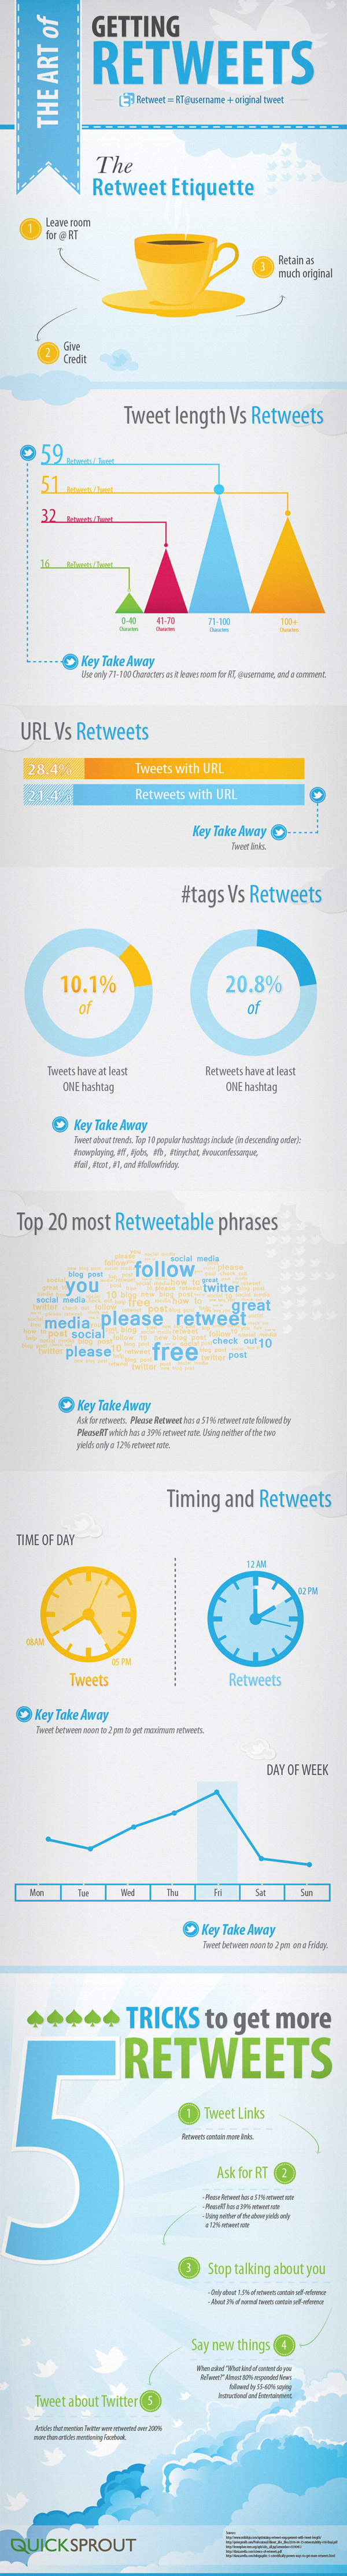 5 tips to get more Retweets